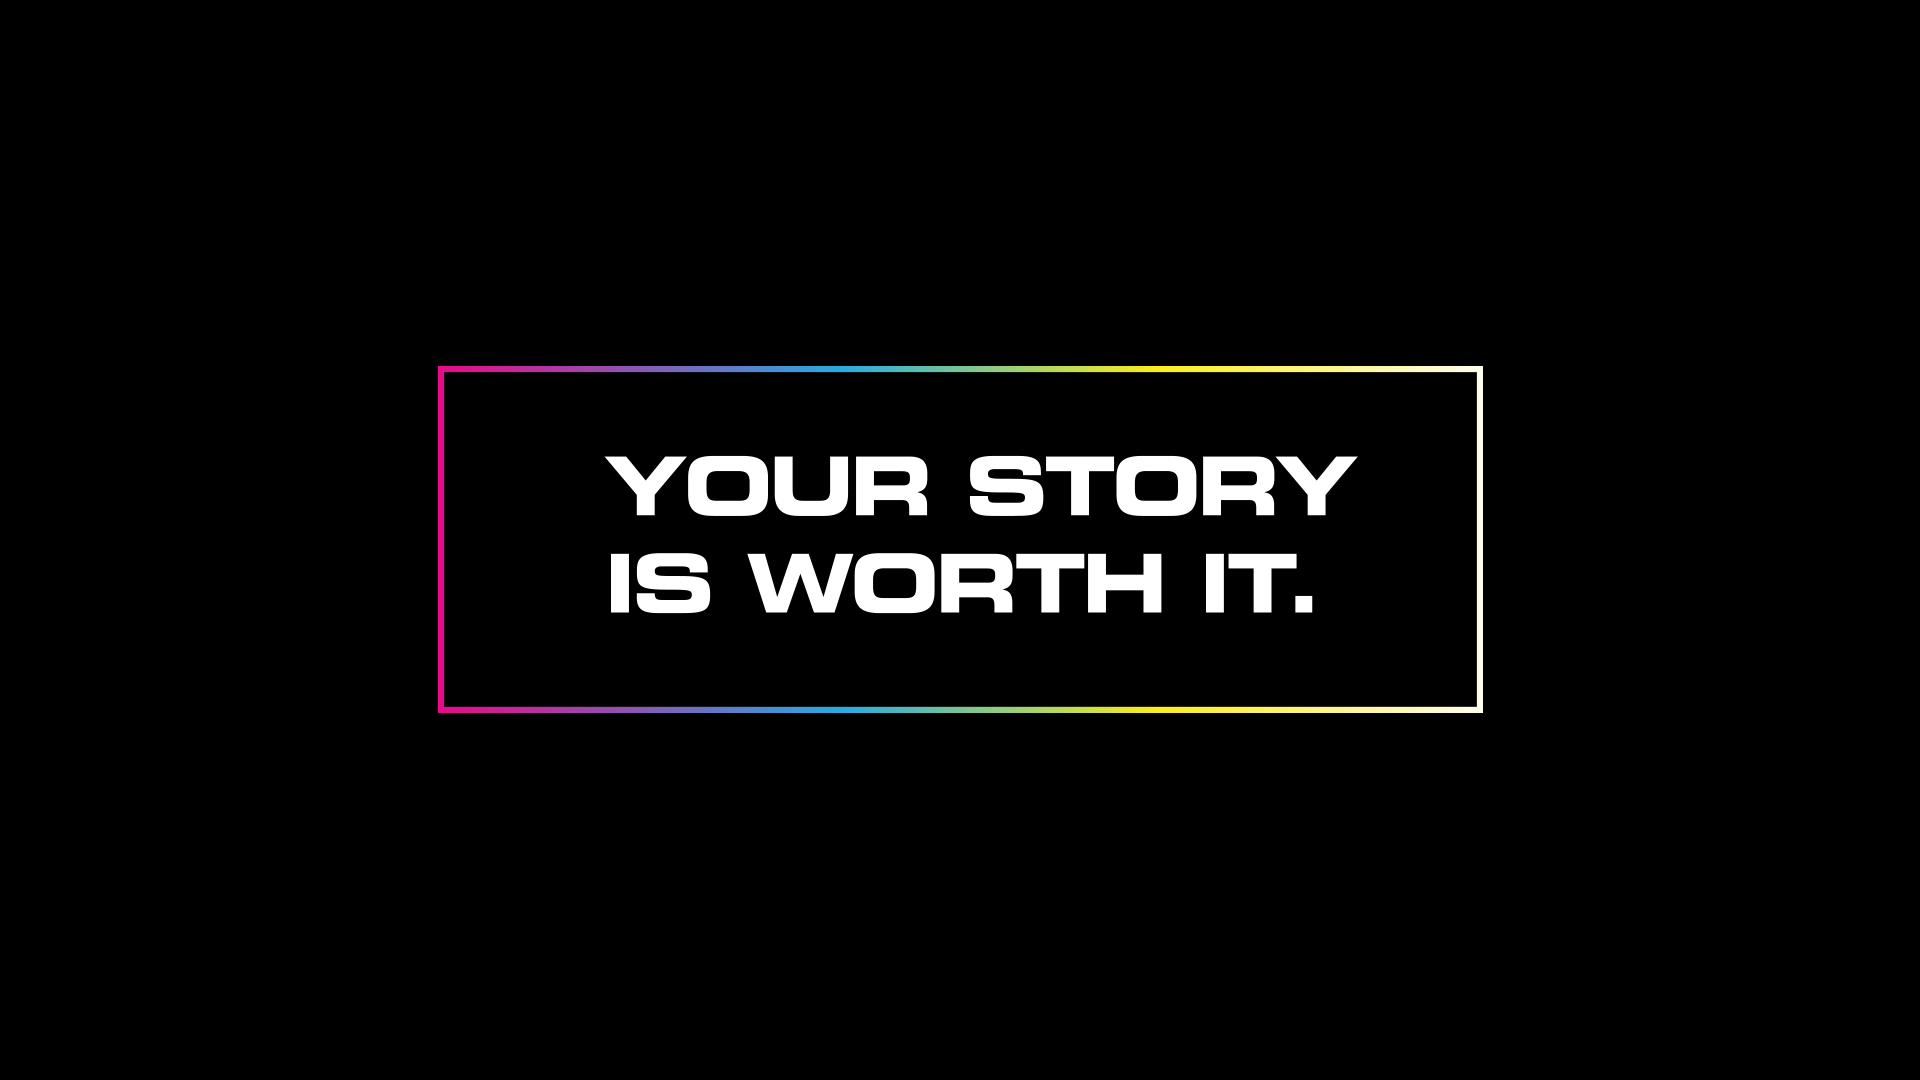 Your Story is Worth It